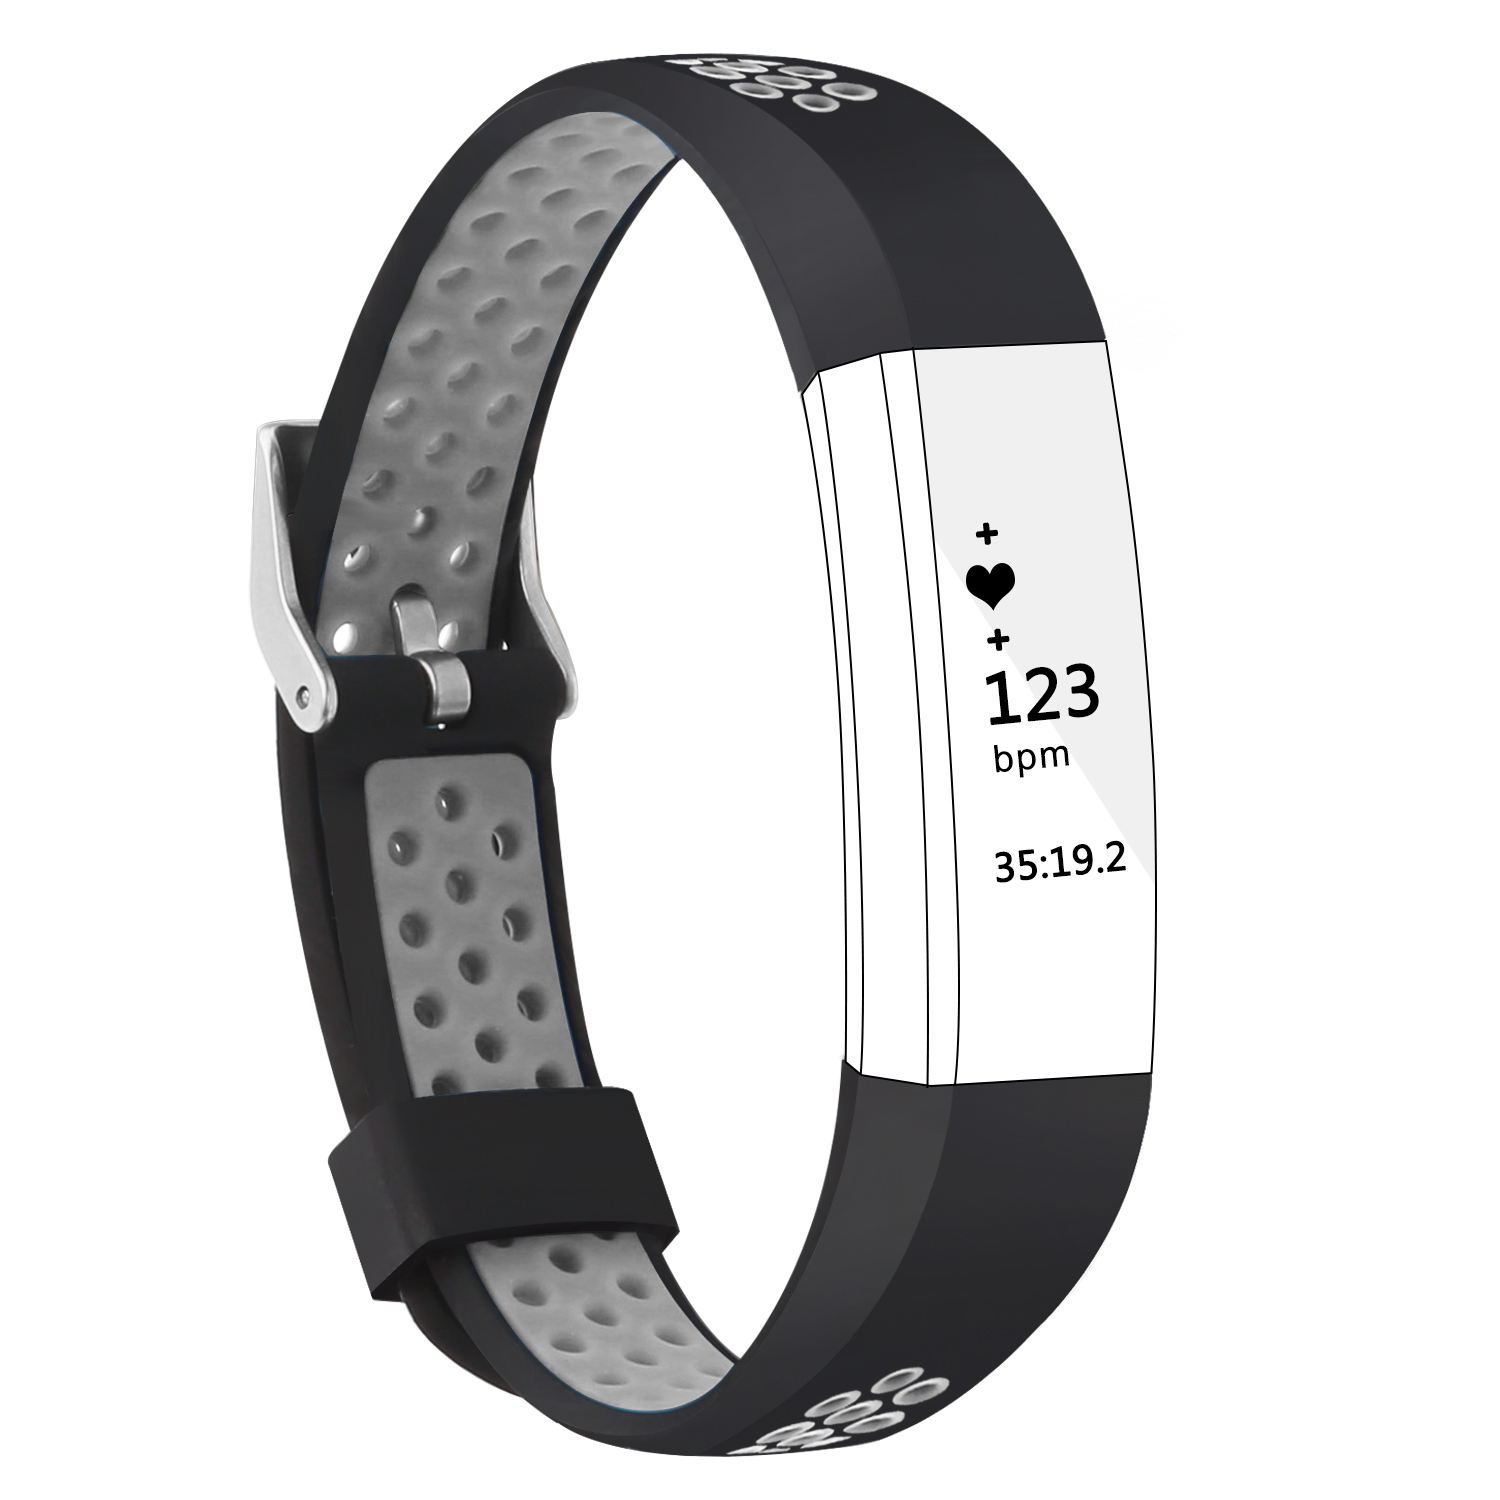 Adepoy Soft Silicone Replacement Strap Bands for Fitbit Alta Fitbit Alta HR with Stainless Steel Buckle by Adepoy